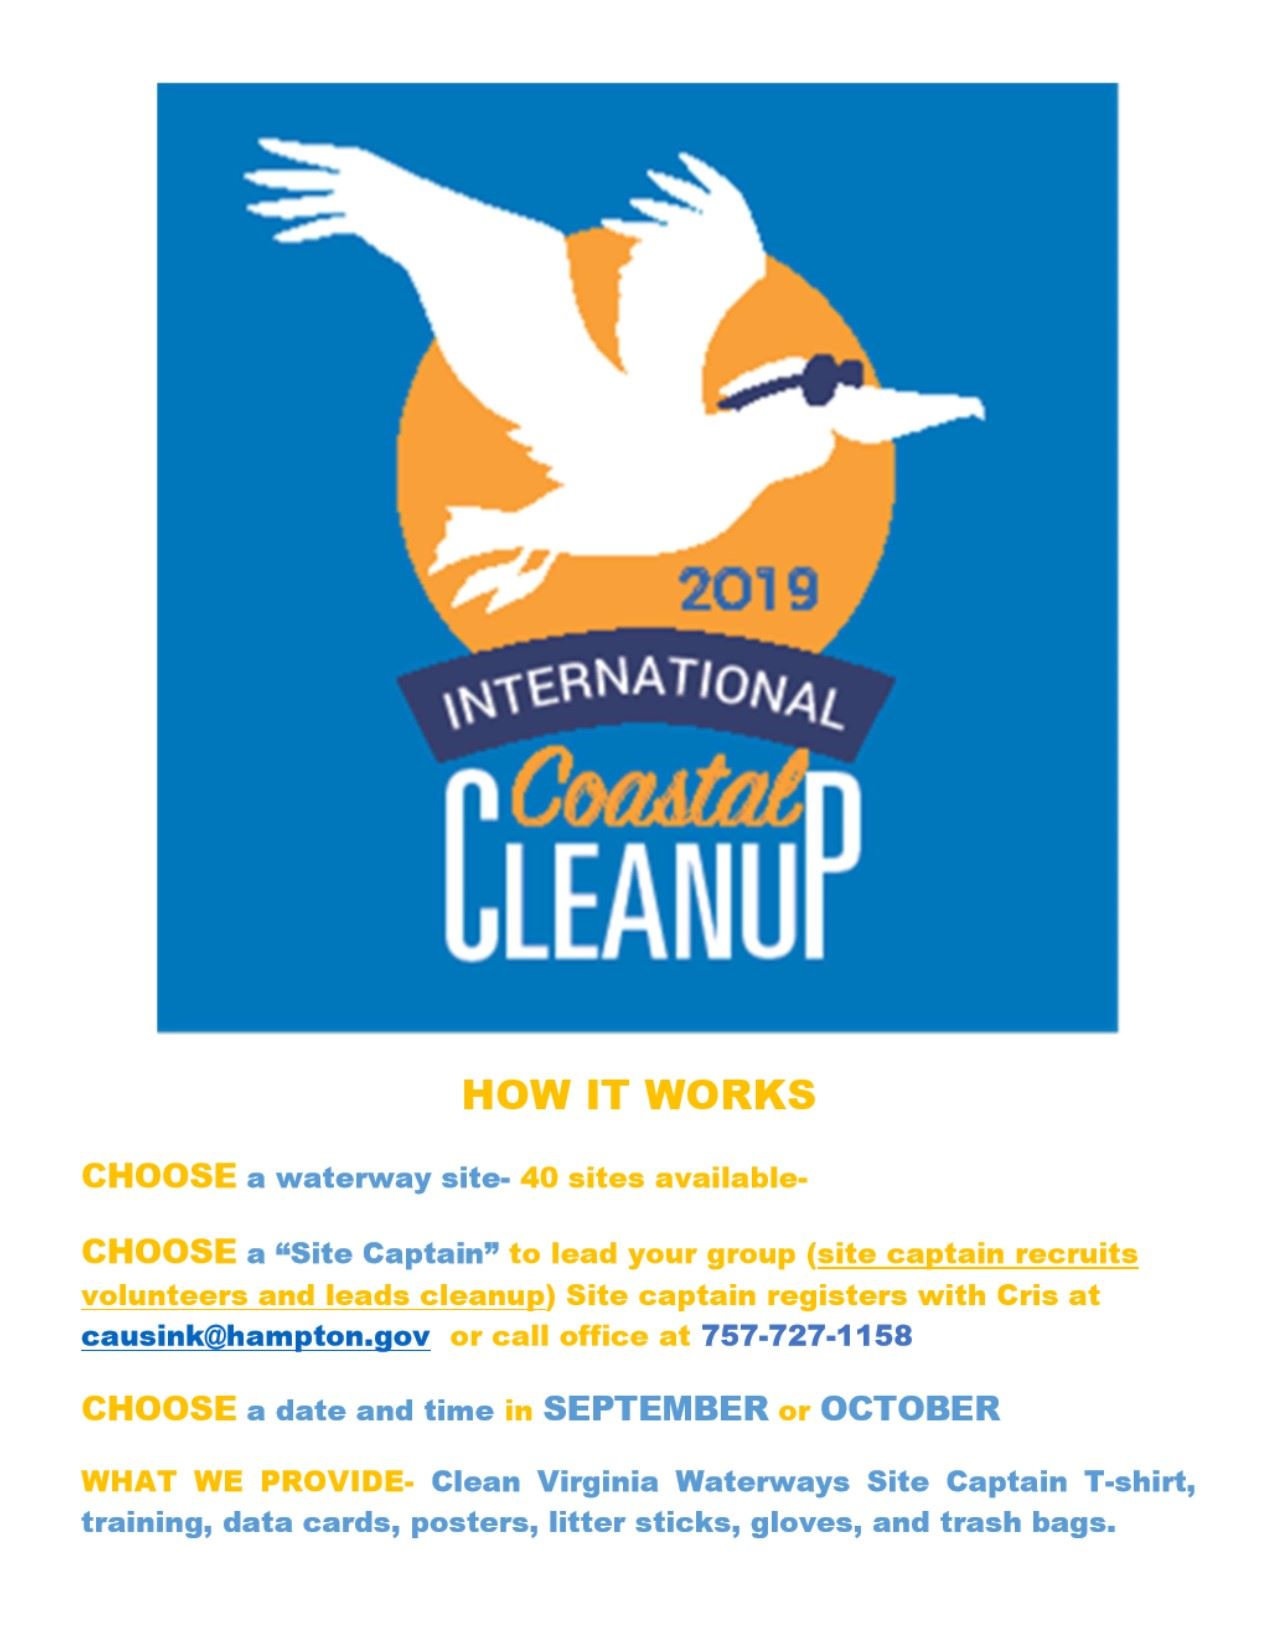 International Coastal Cleanup Flyer 2019.jpg